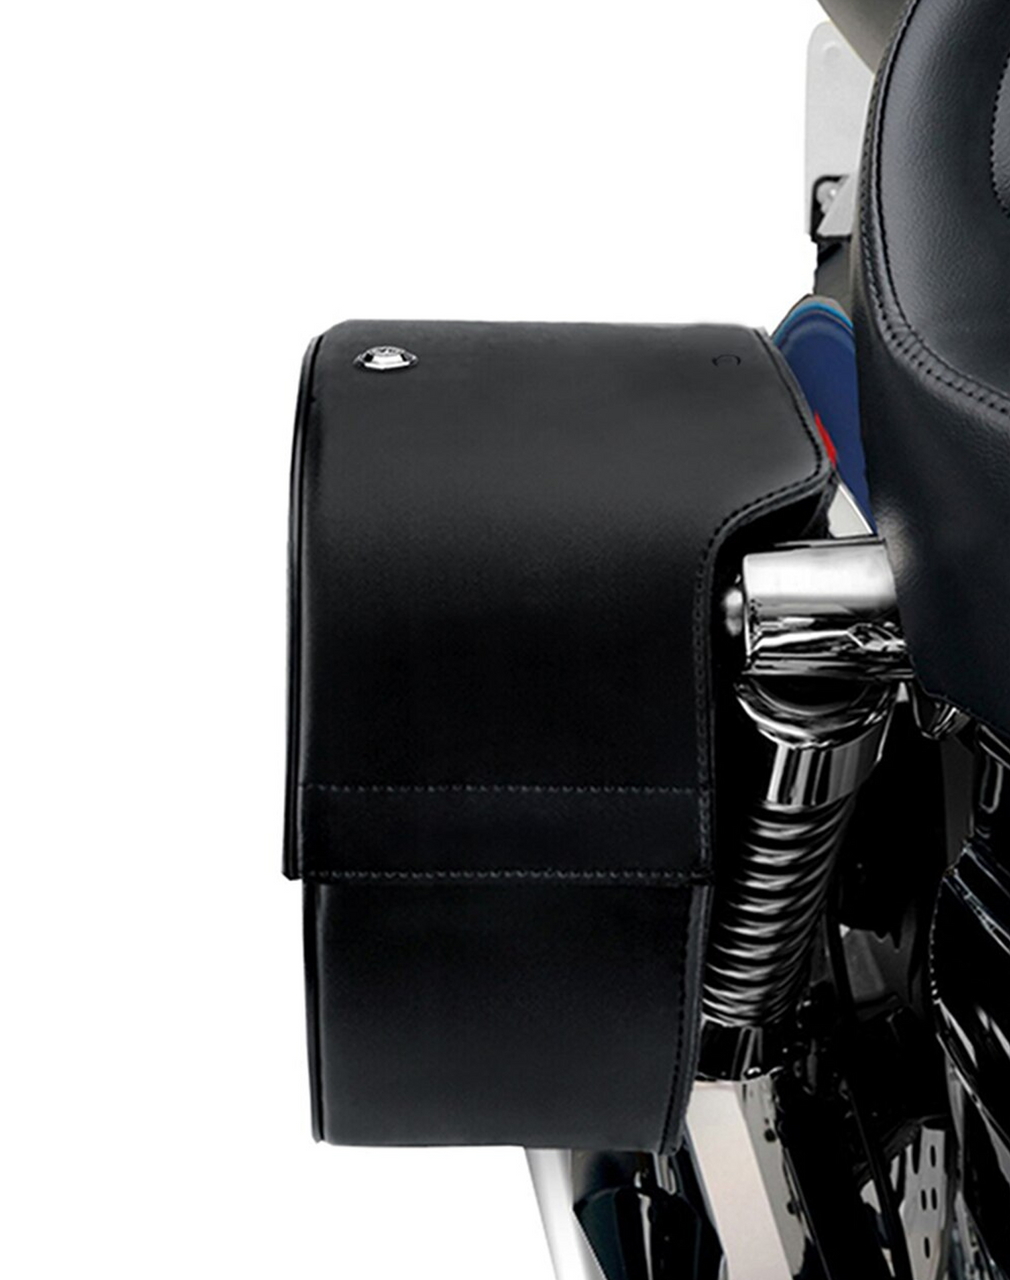 Viking Large Shock Cutout Warrior Slanted Motorcycle Saddlebags For Harley Sportster 1200 Low XL1200L Shock Cutout View